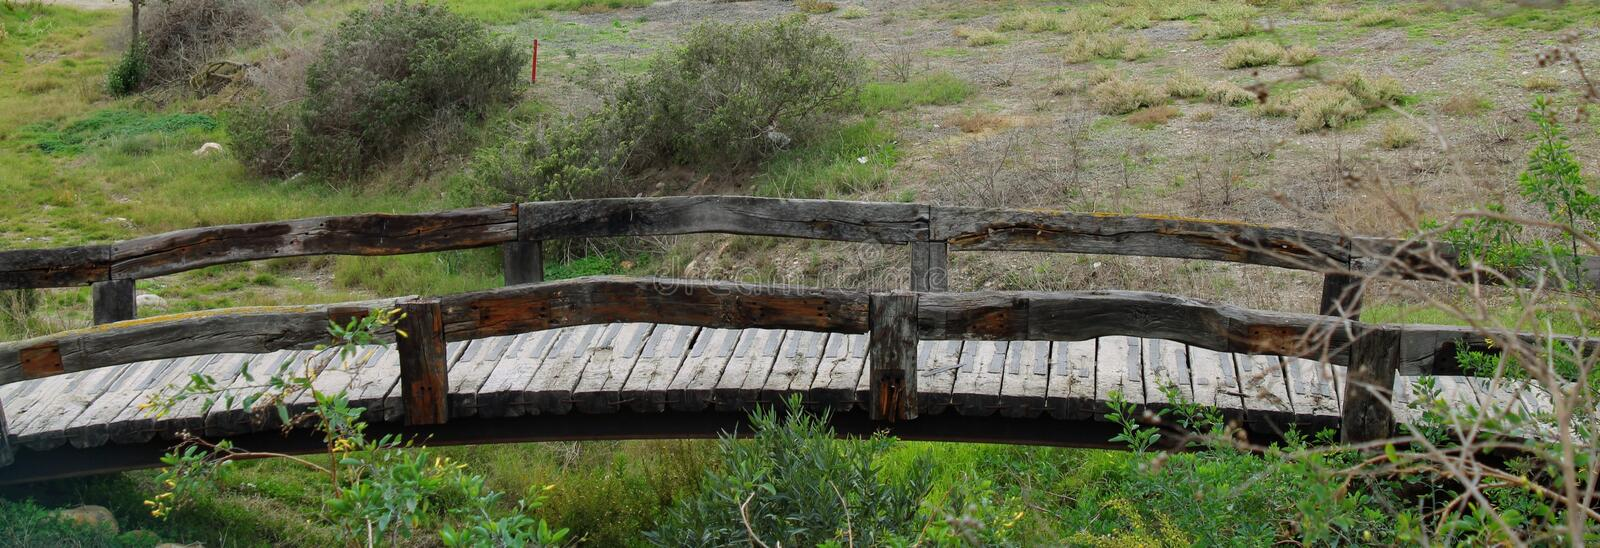 Small wooden bridges on golf course stock images